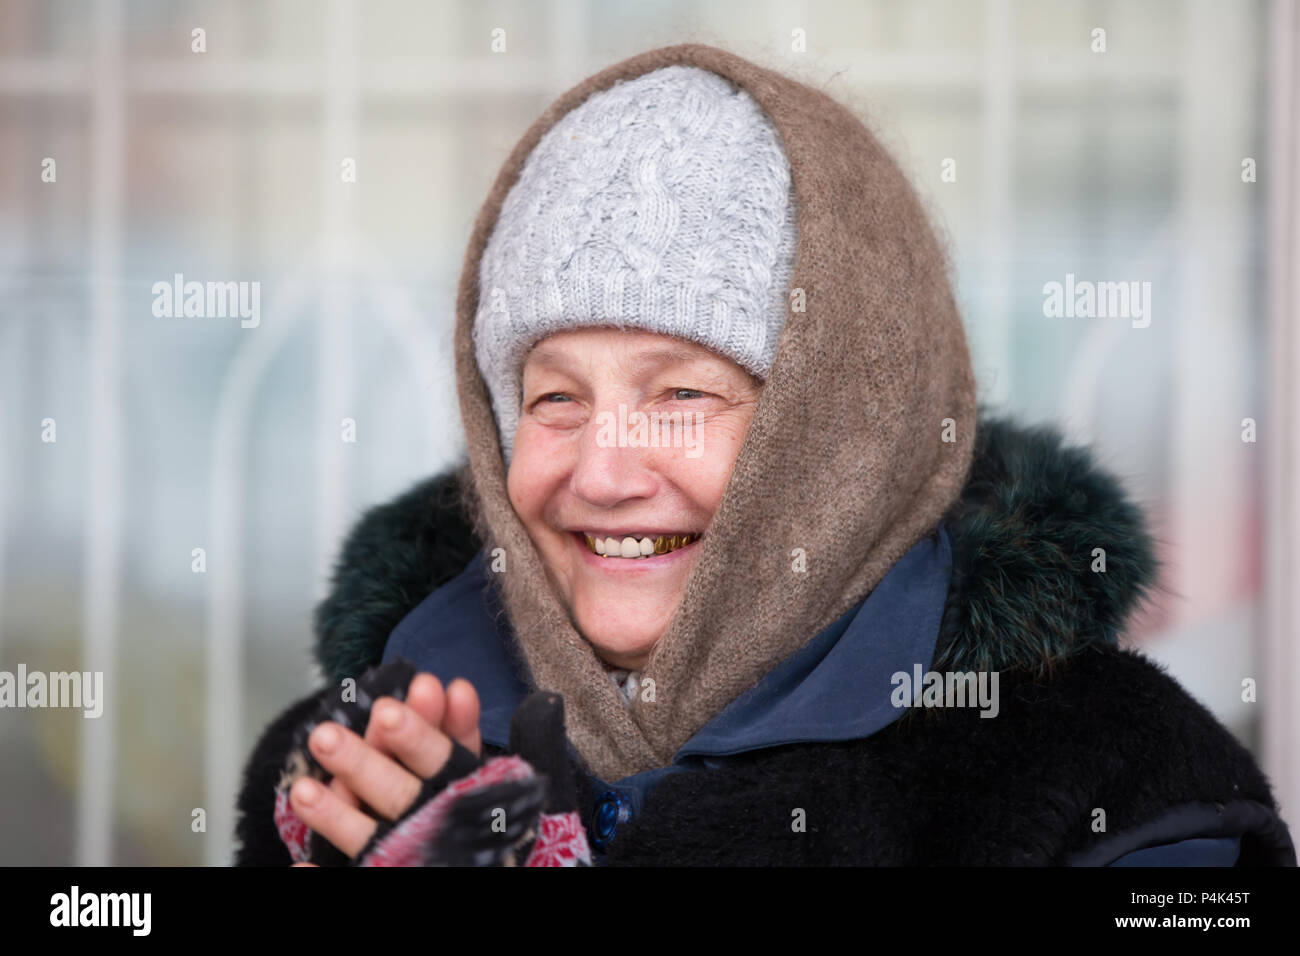 Belarus, Gomel, January 13, 2017. Central market., Shopping arcades. Portrait of a woman in a downy shawl with gold teeth. The old Russian poor woman - Stock Image